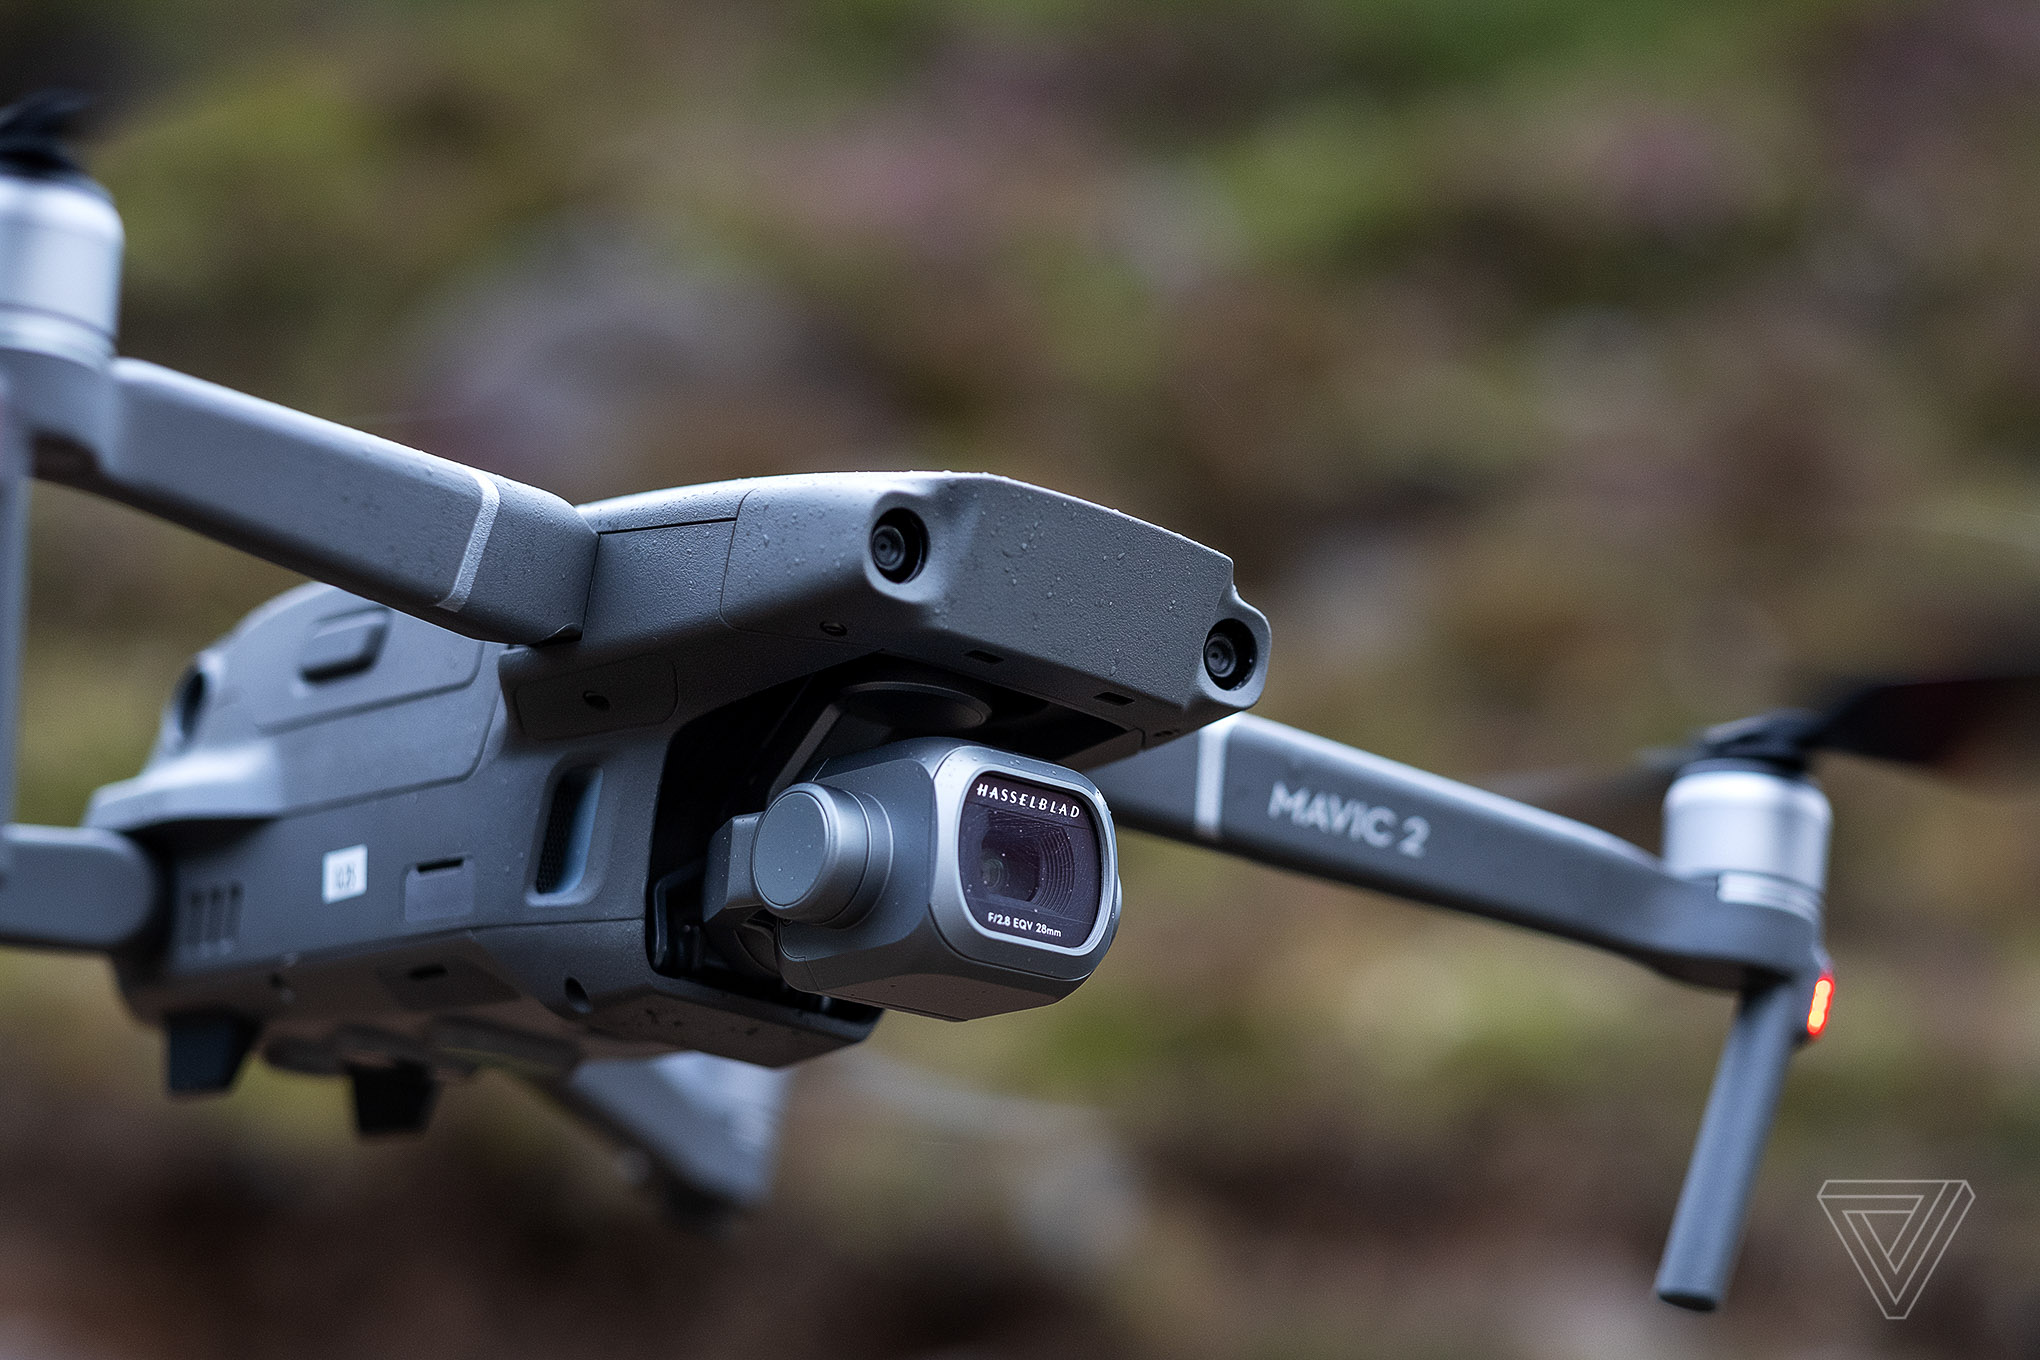 94f66f08a67 DJI's new Mavic 2 drones have upgraded cameras and zoom lenses - The ...